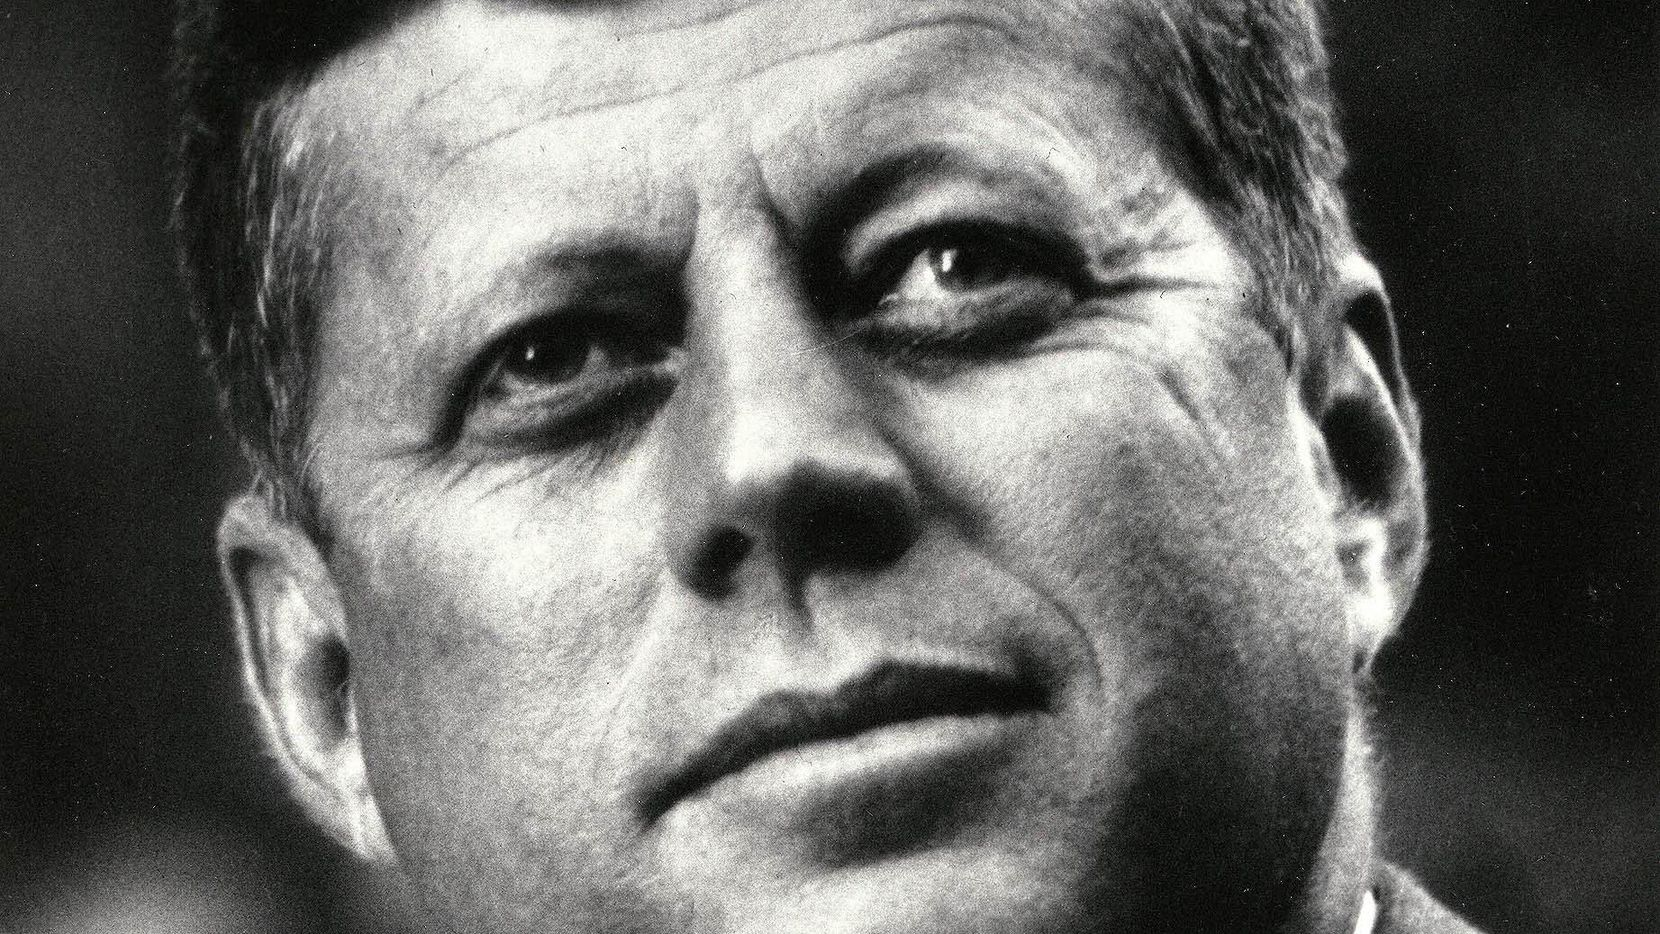 A 1963 photo of Pres. John F. Kennedy.